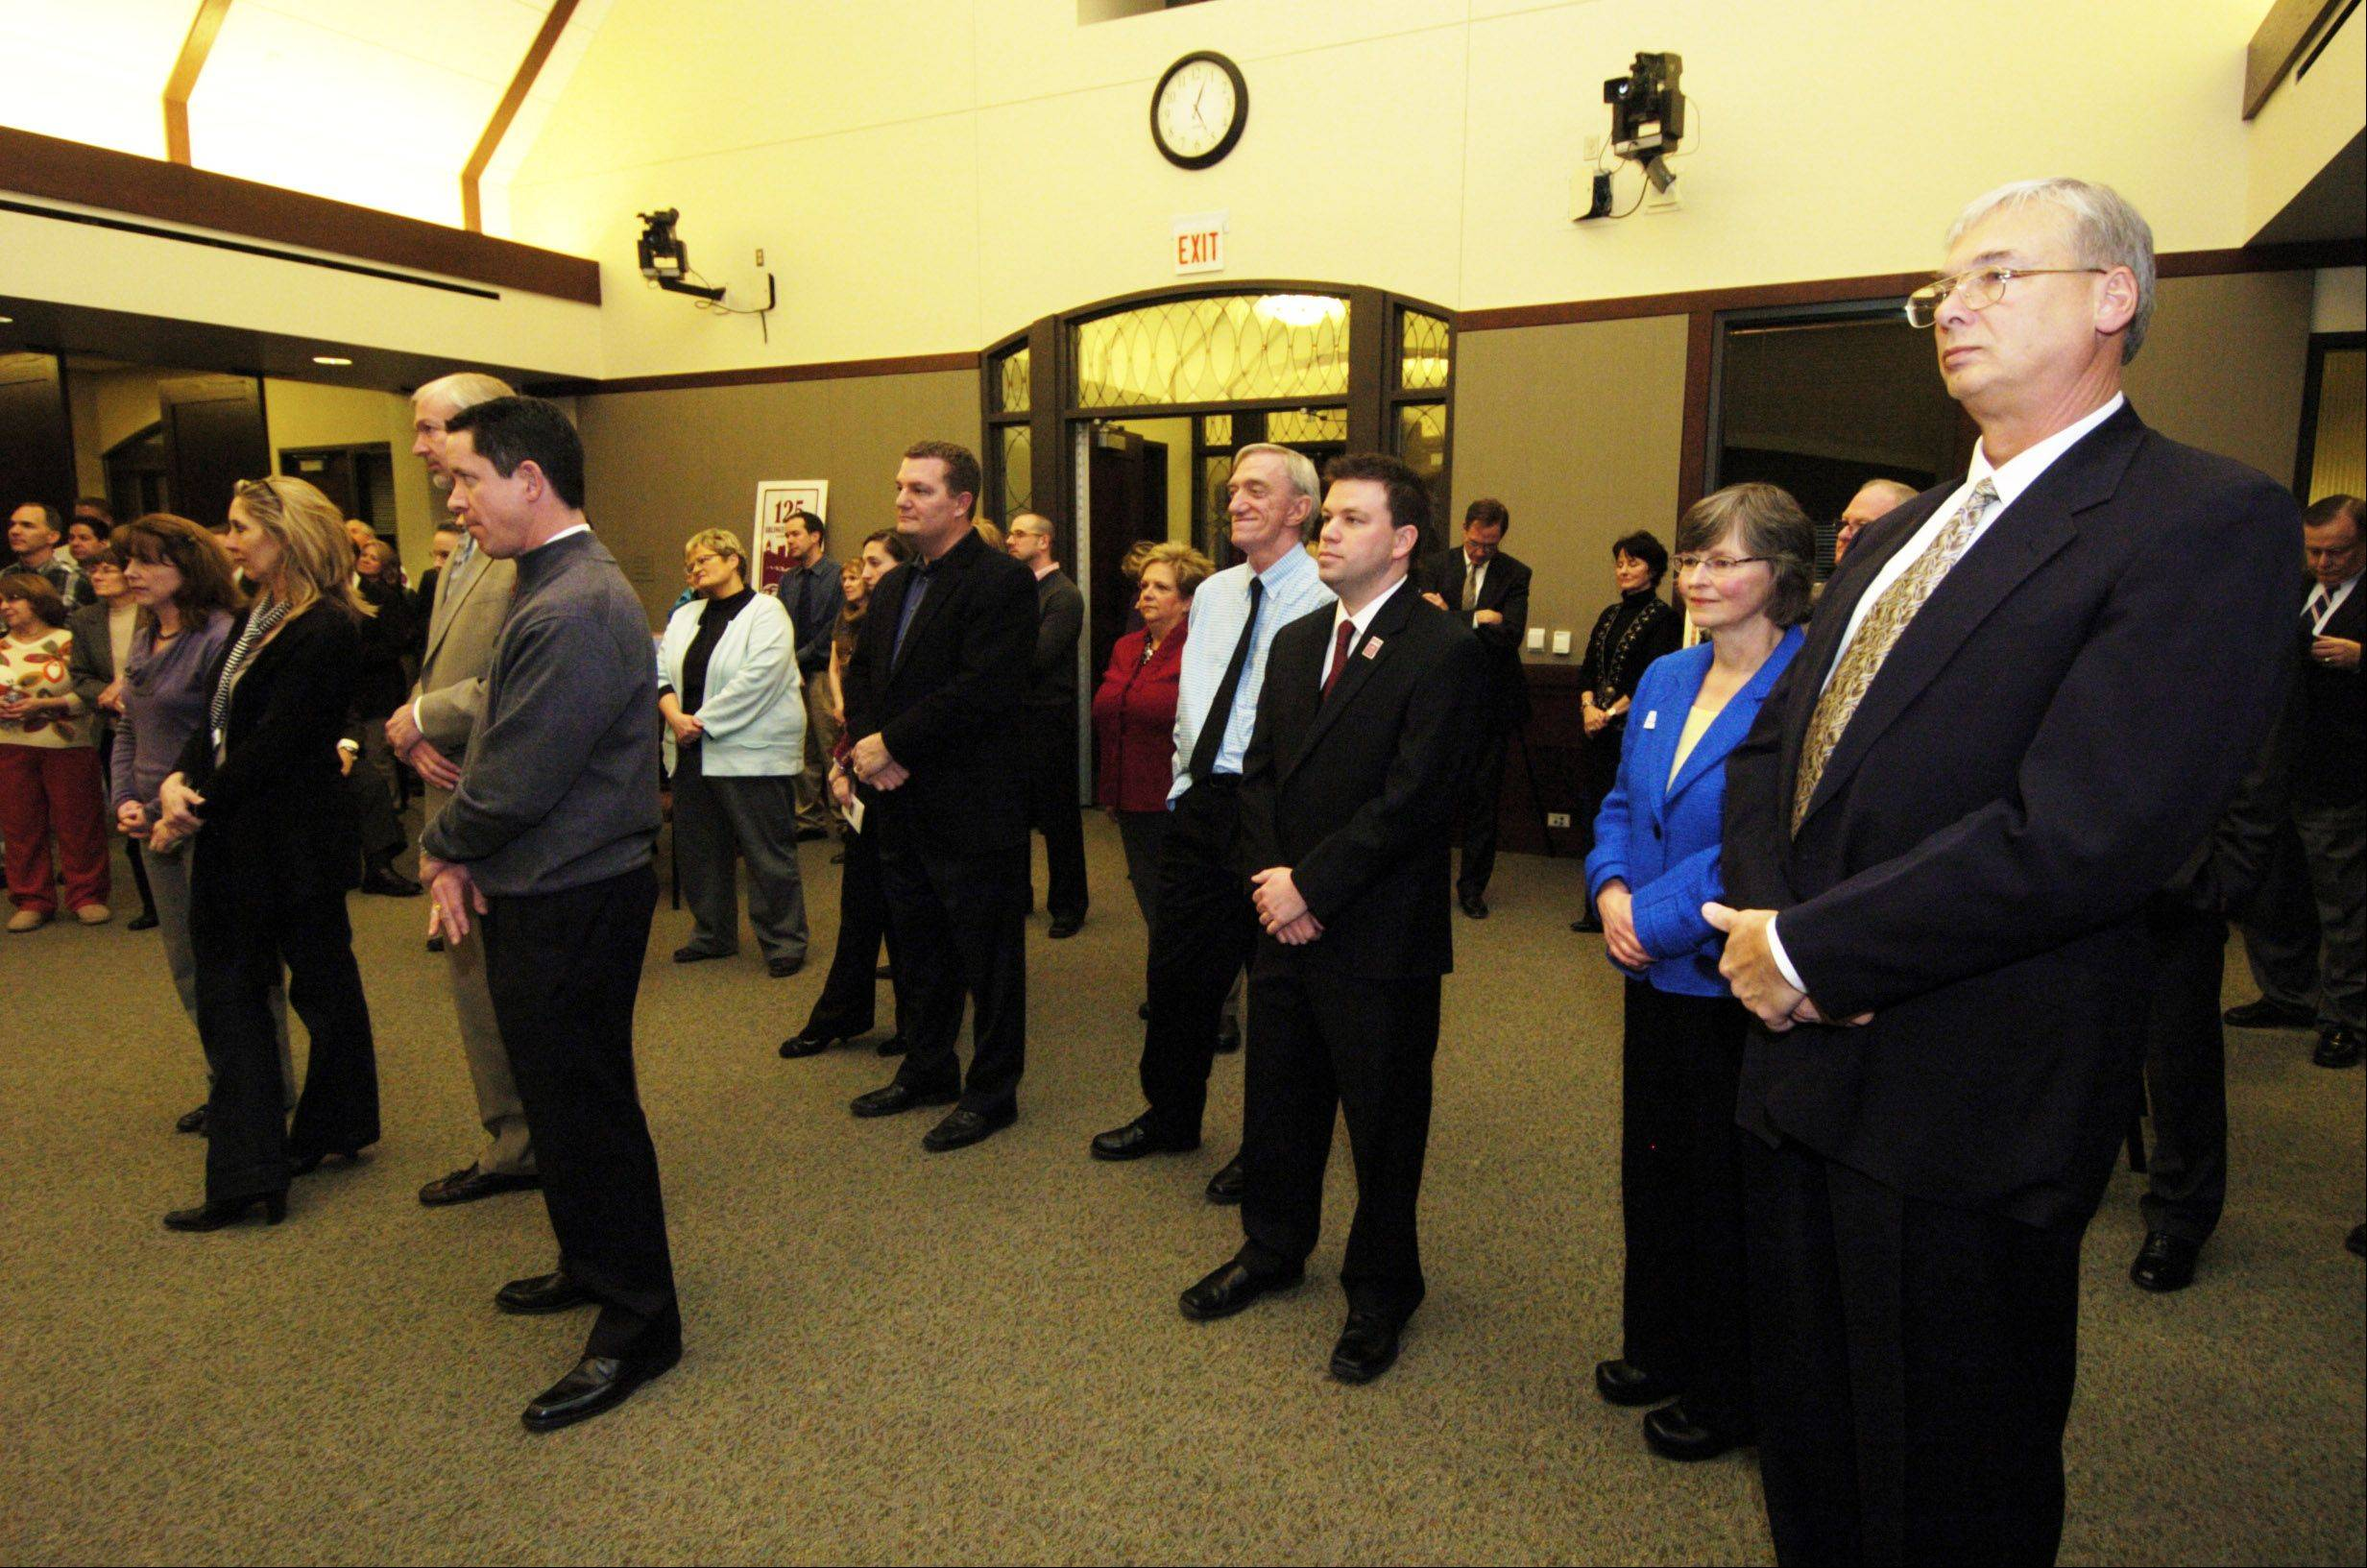 About 100 people attended a reception Wednesday marking the date of Arlington Heights' incorporation 125 years ago.